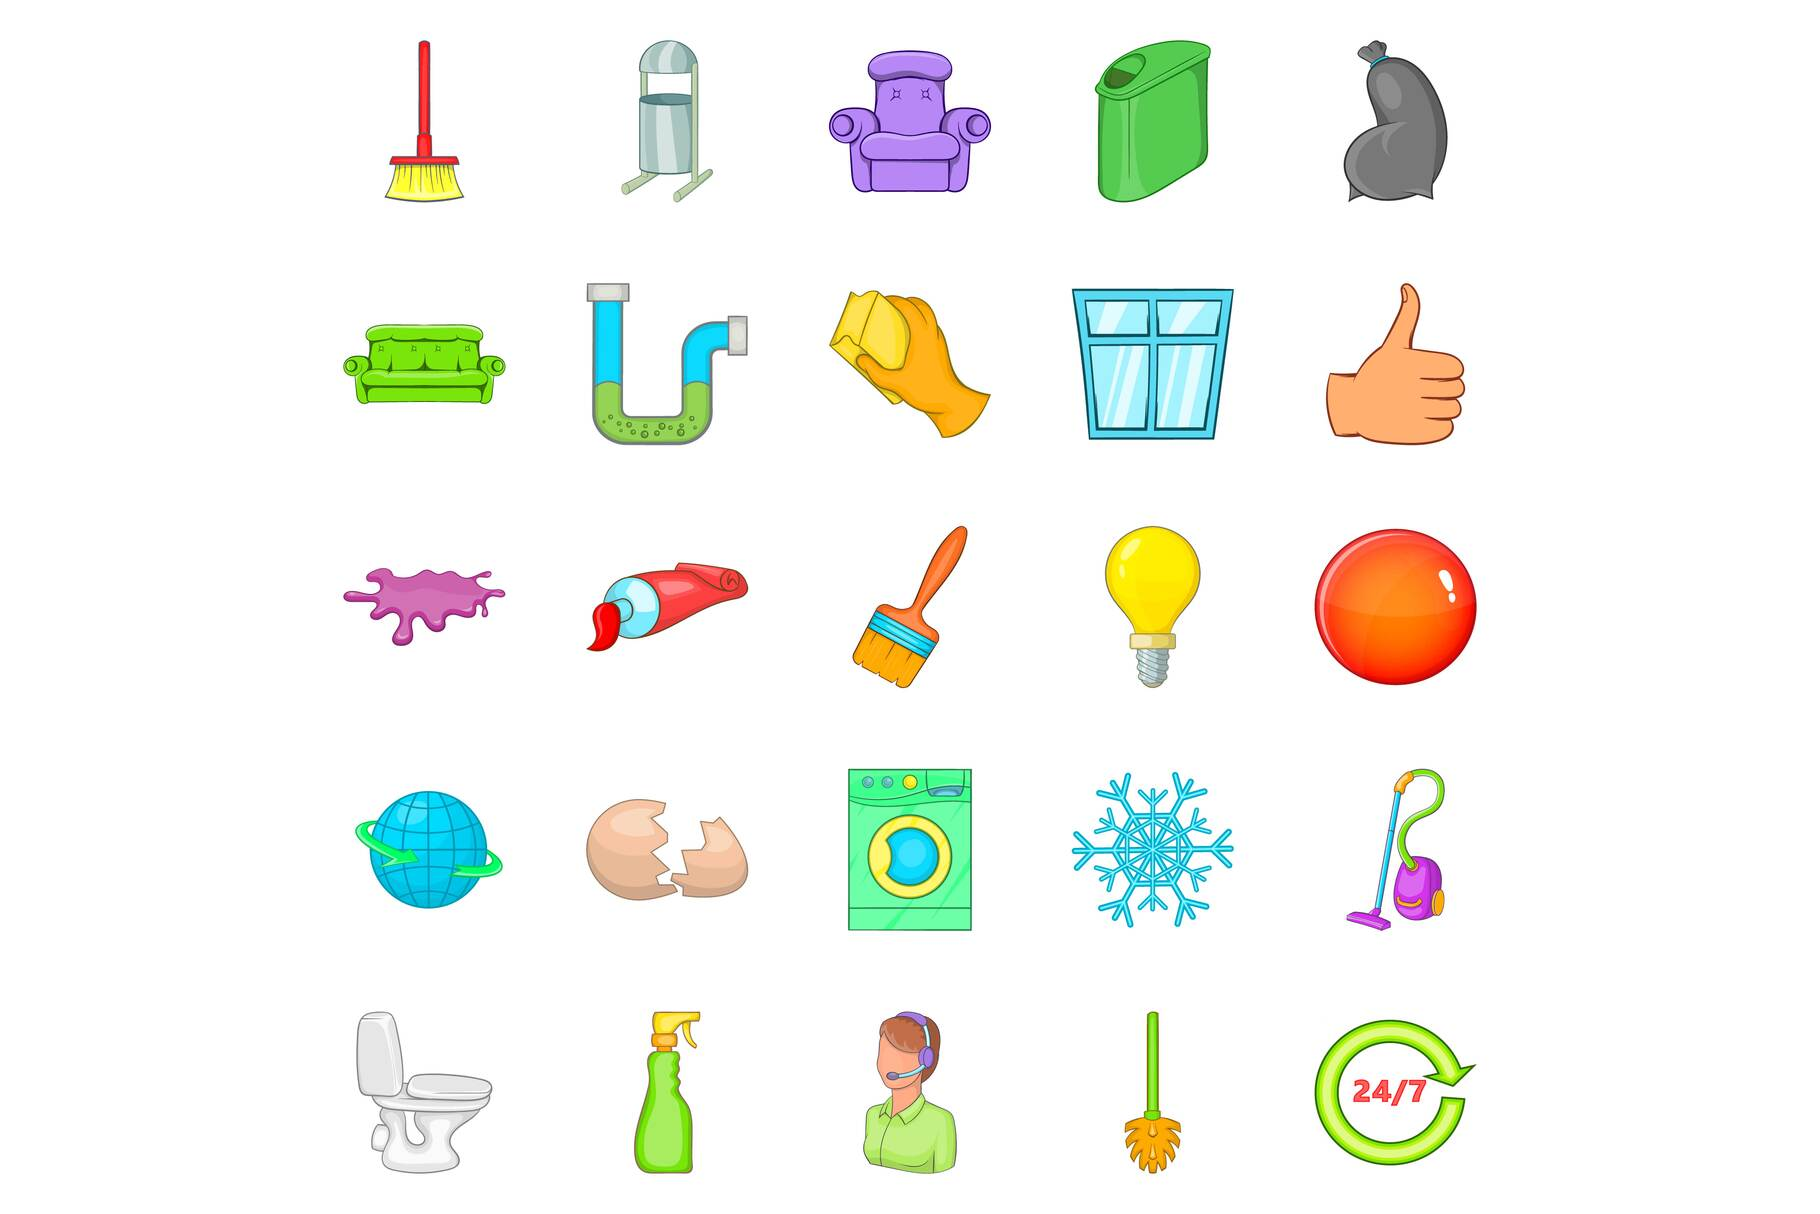 Service worker icons set, cartoon style example image 1